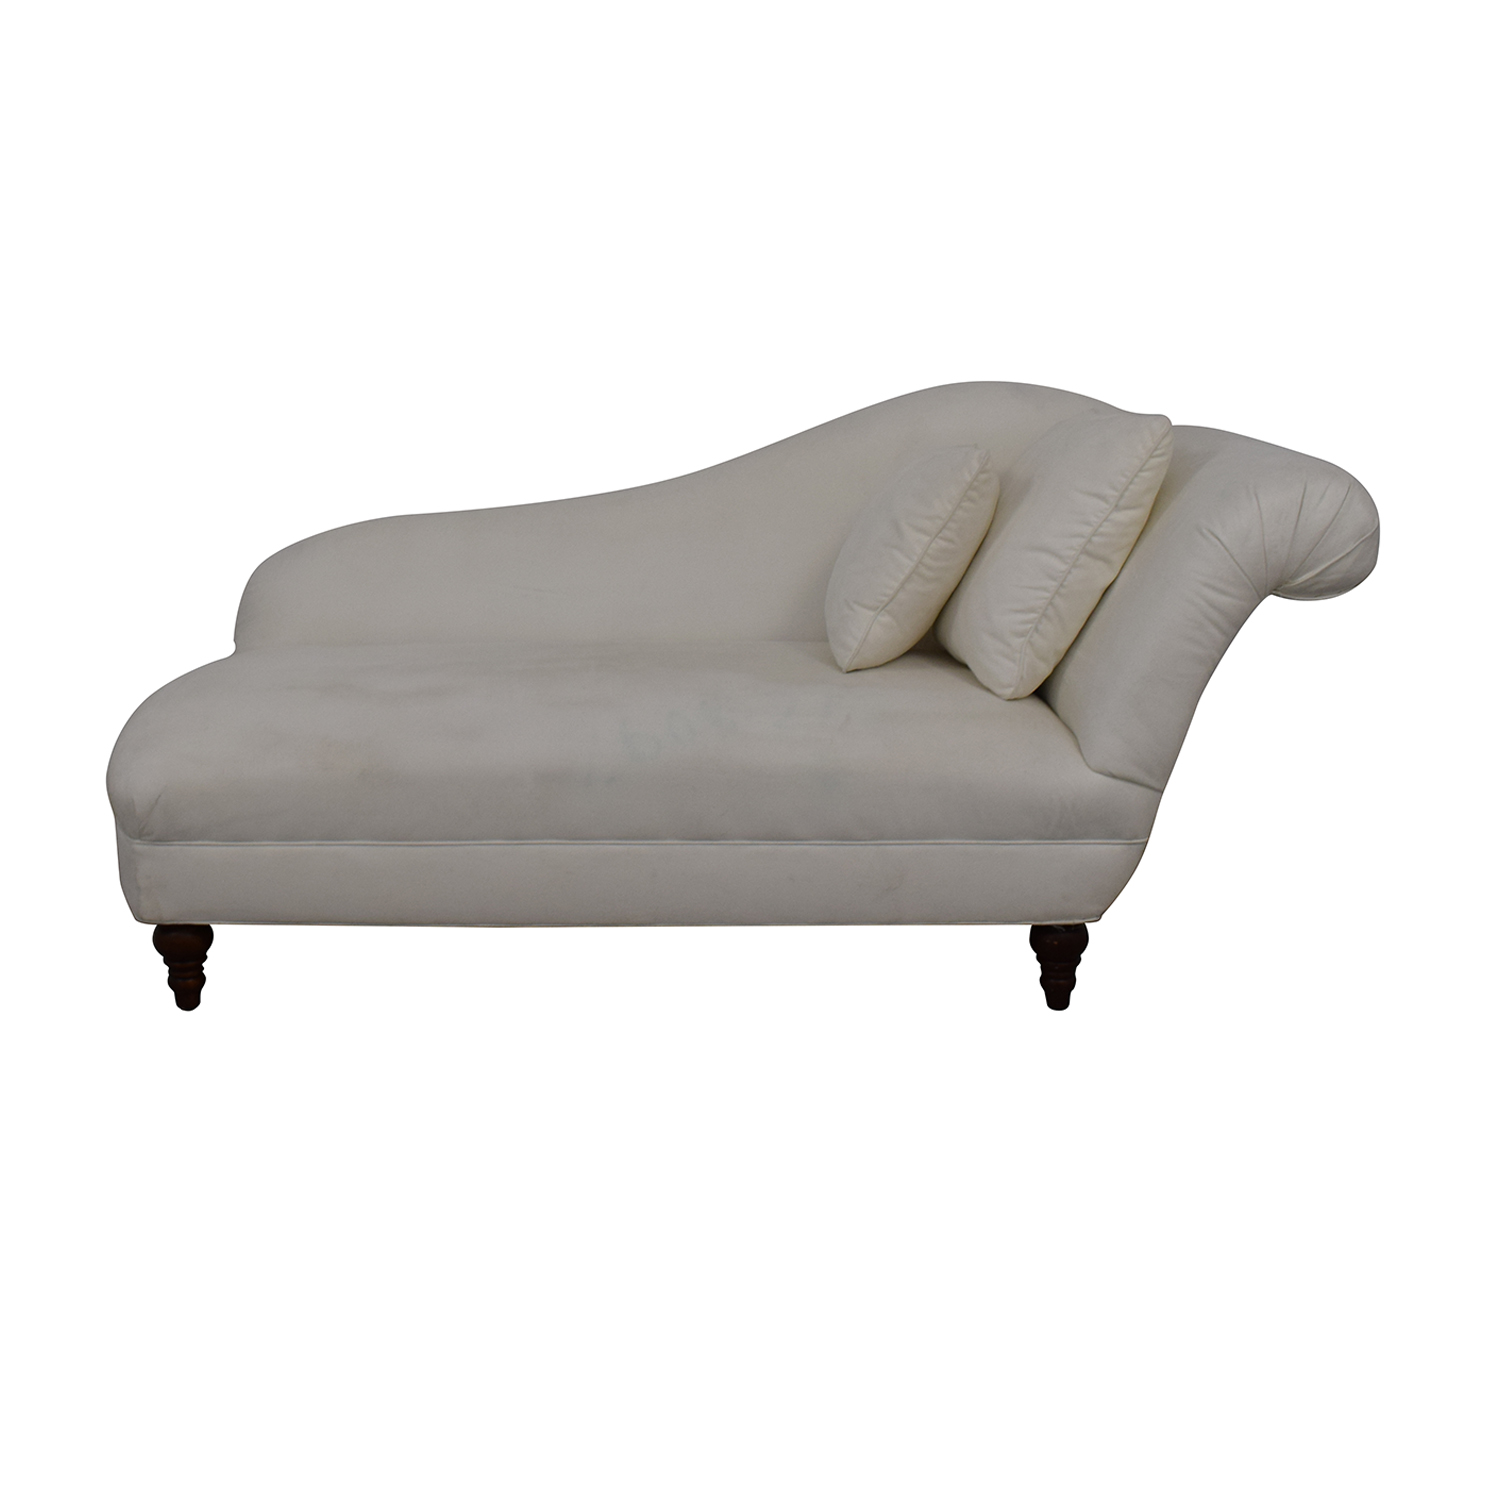 Fairfield Chair Company Fairfield Chair Company Living Room White Chaise nyc